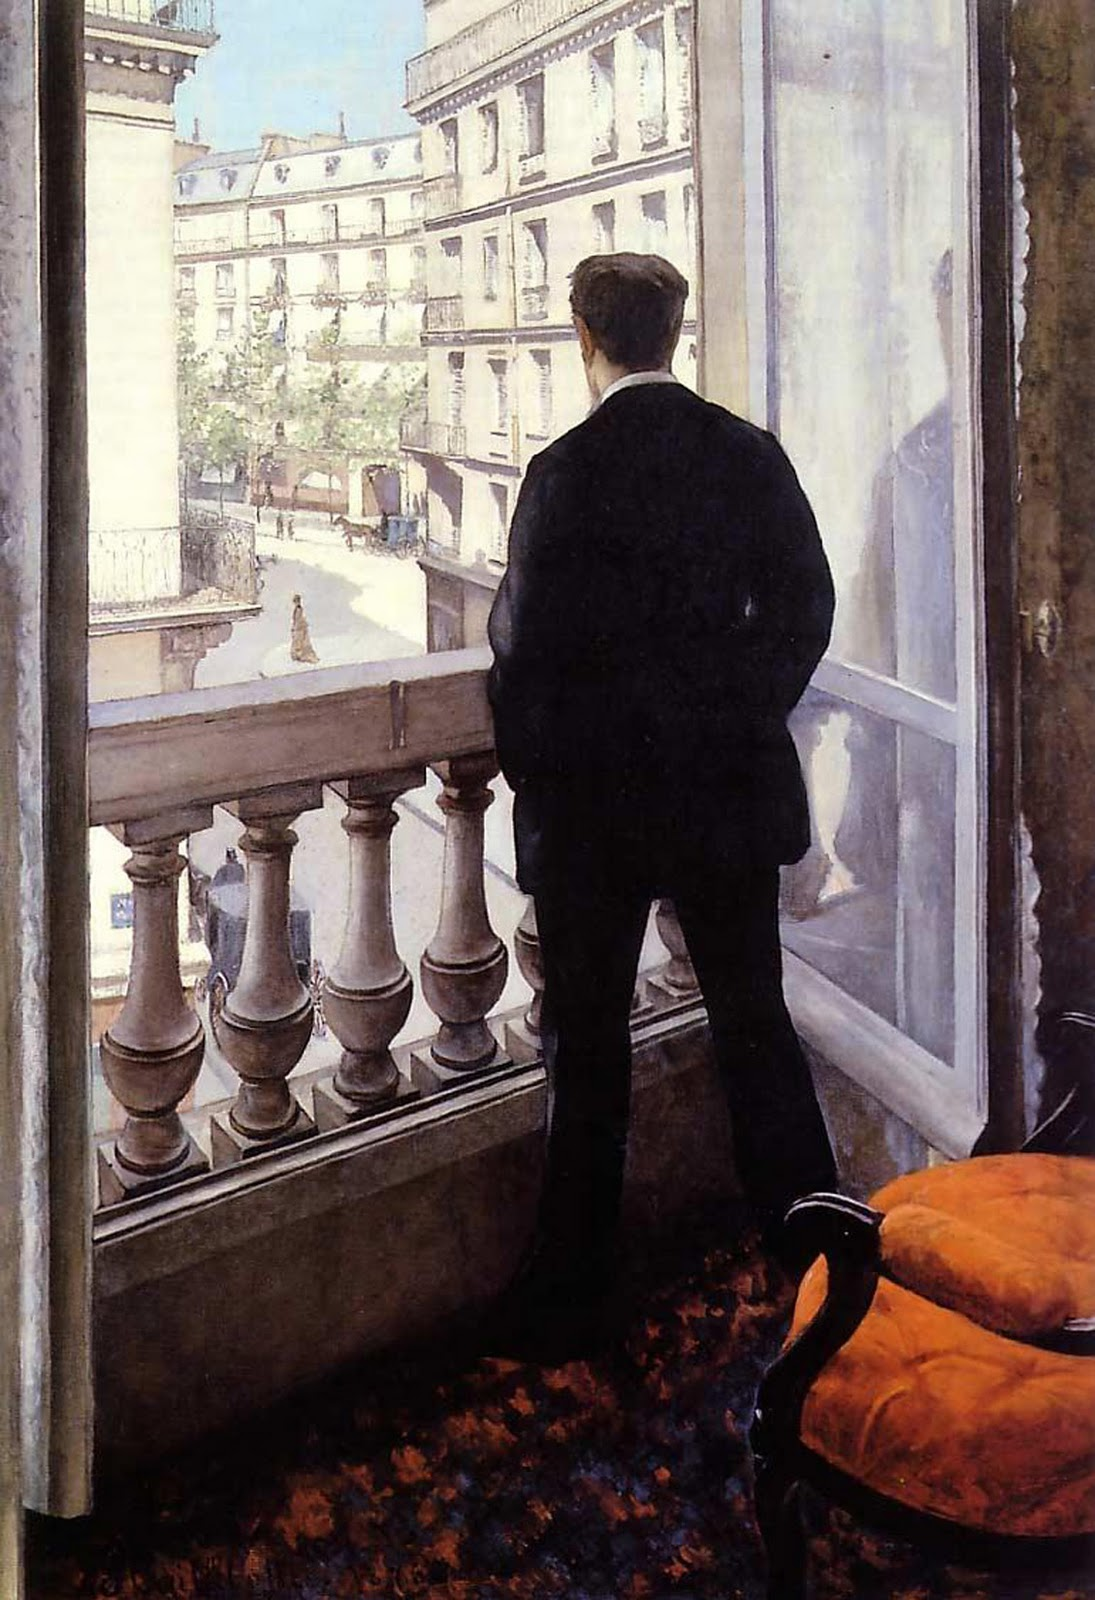 http://upload.wikimedia.org/wikipedia/commons/a/af/G._Caillebotte_-_Jeune_homme_%C3%A0_la_fen%C3%AAtre.jpg